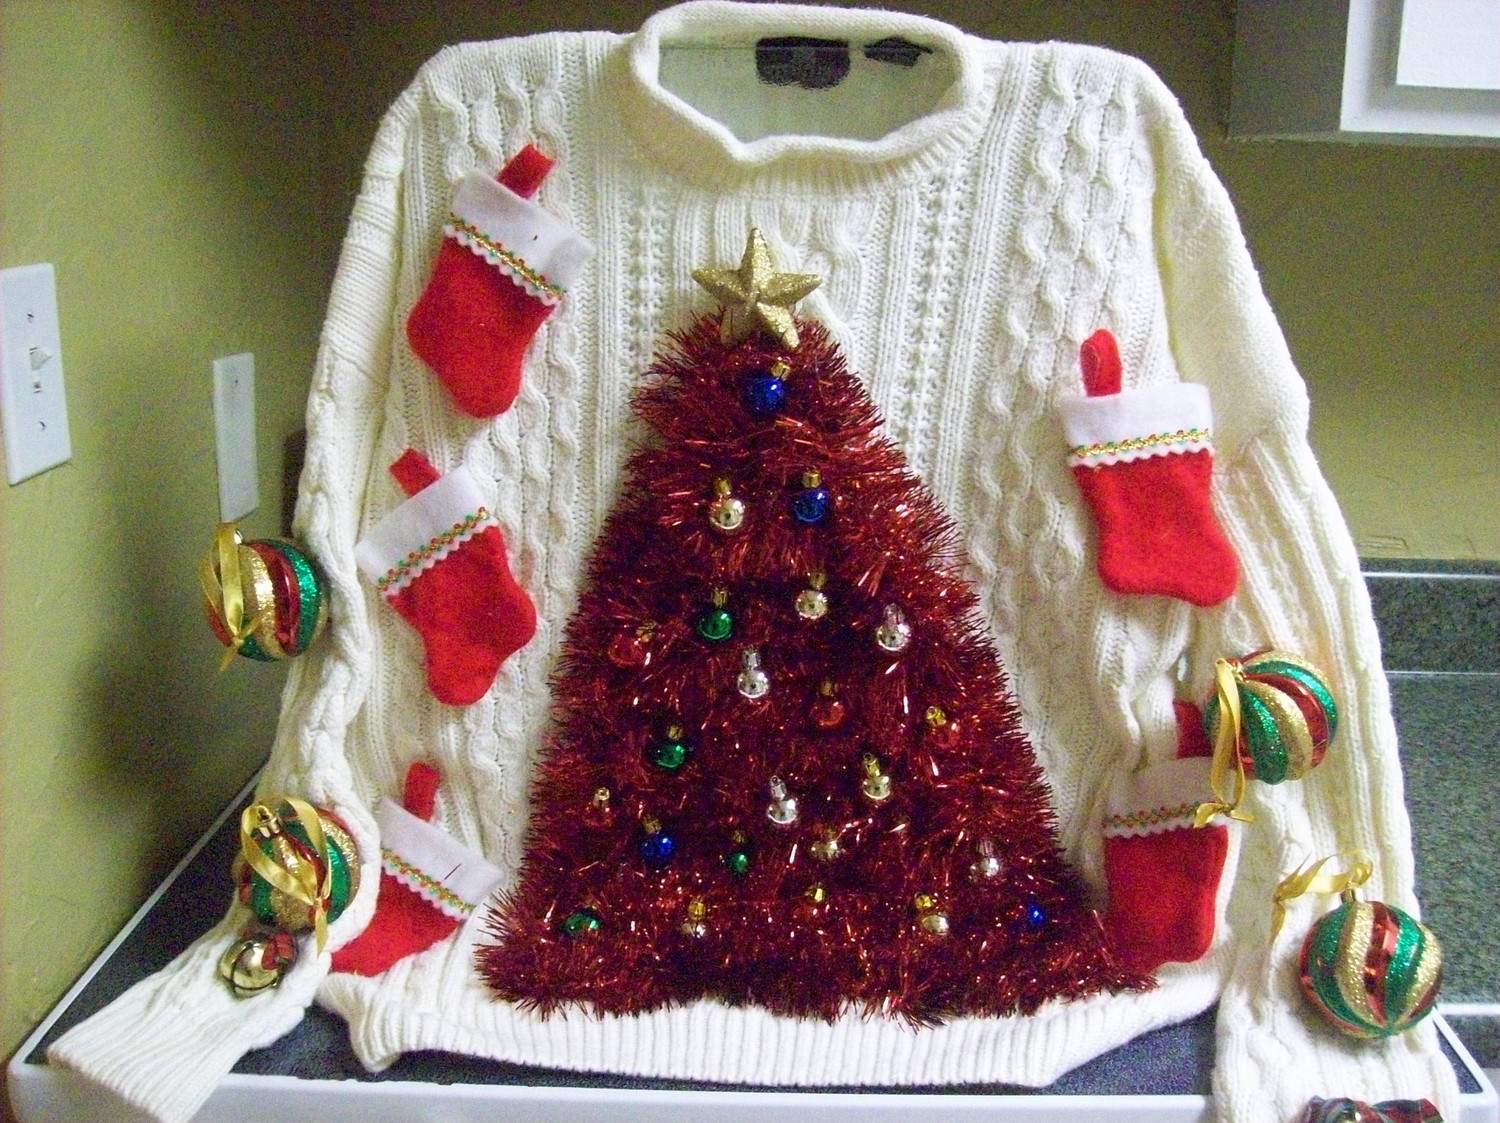 ugly-christmas-sweater-09-tree-made-from-tinsel-and-christmas-stockings.jpg